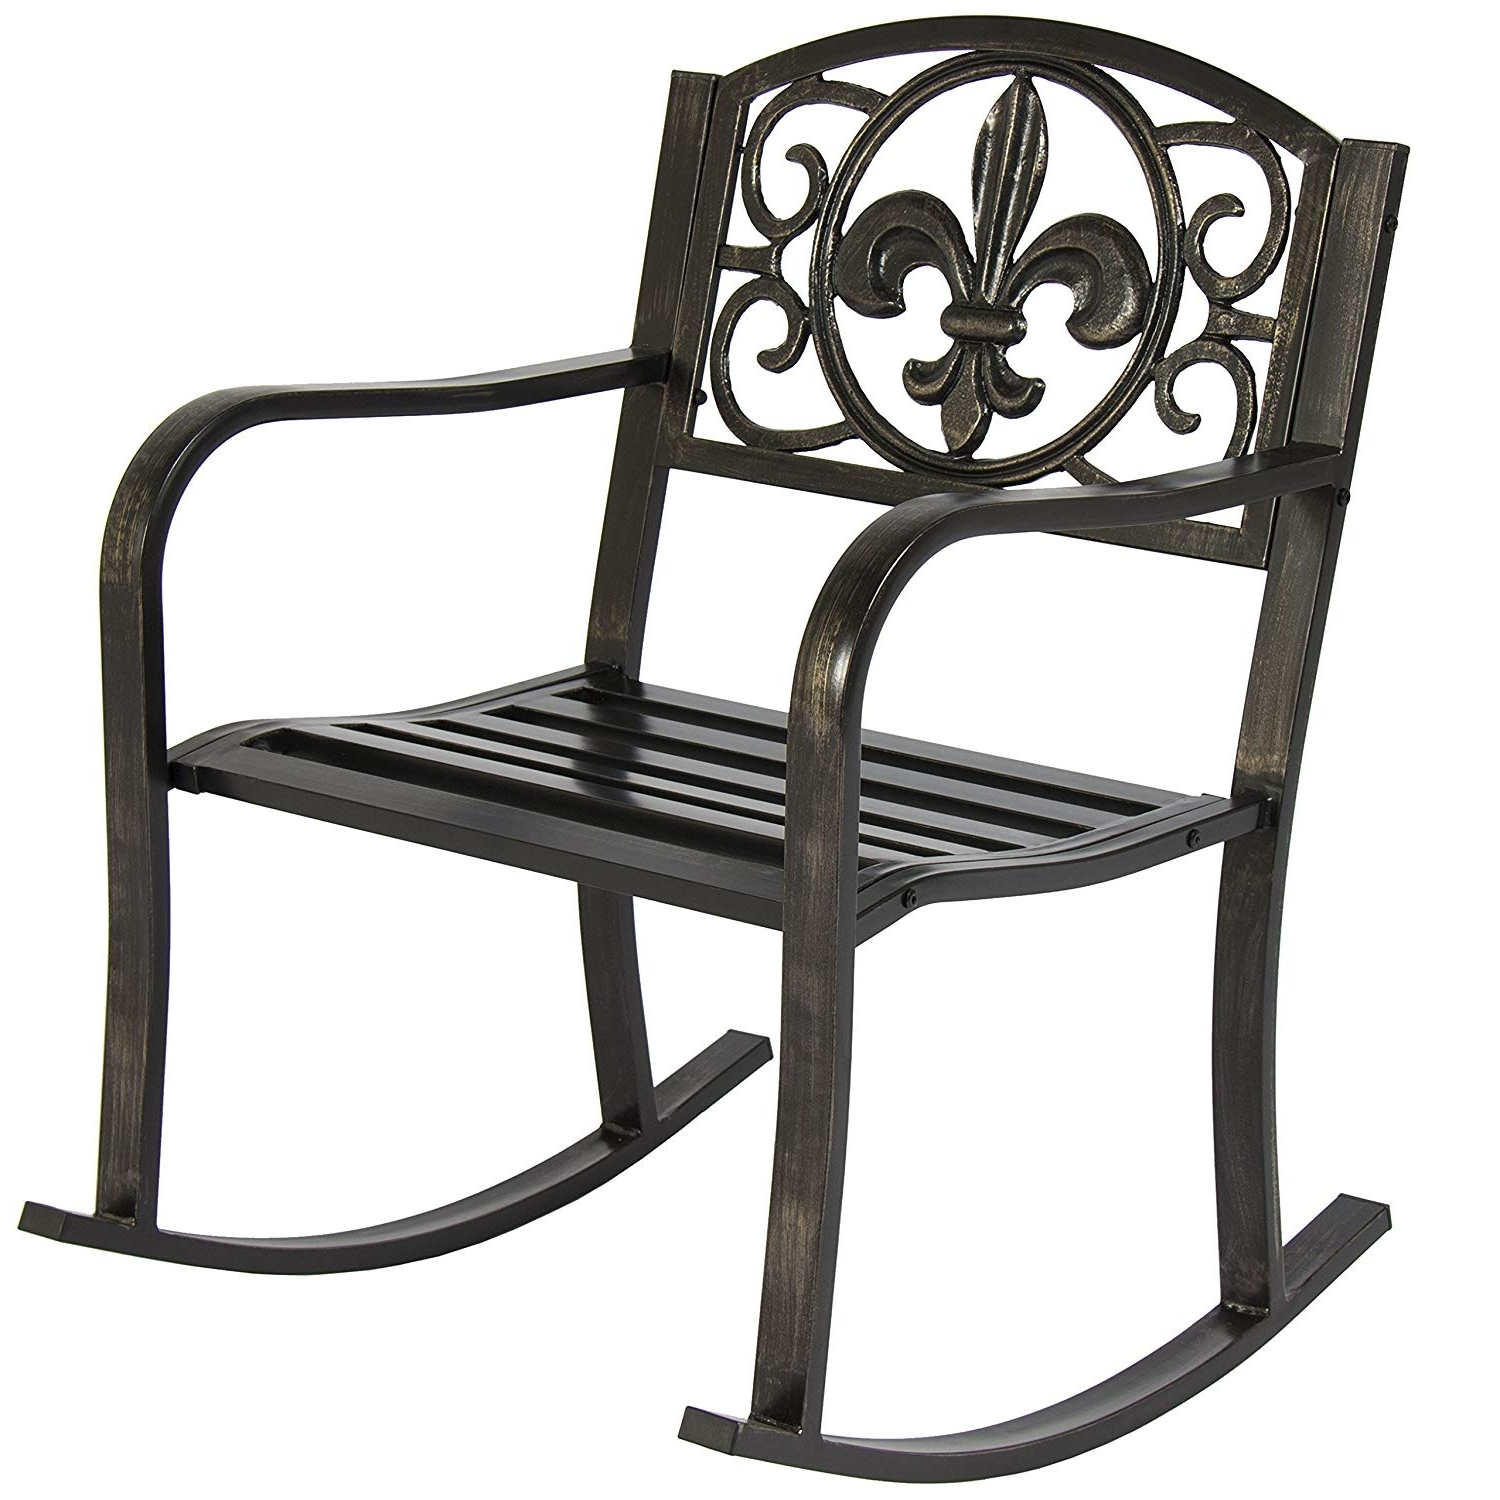 Most Up To Date Aluminum Patio Rocking Chairs Intended For Amazon : Best Choice Products Metal Rocking Chair Seat For Patio (View 12 of 15)